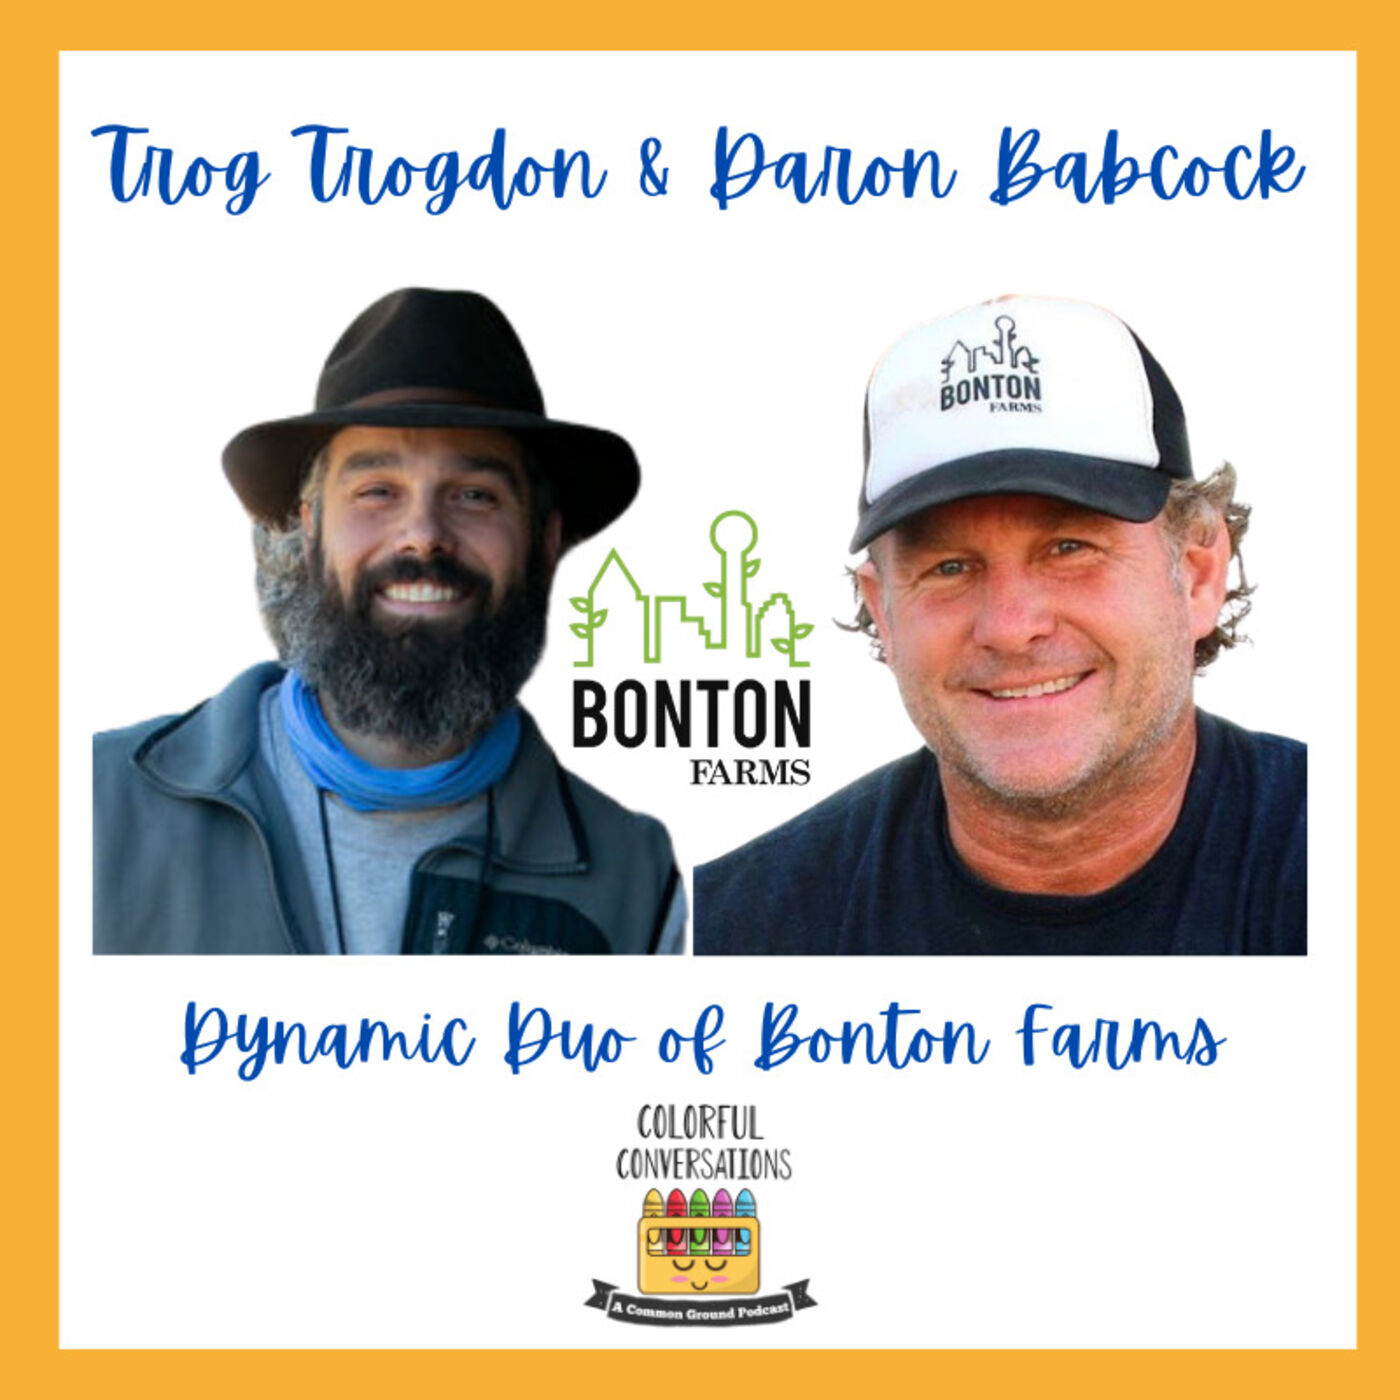 A Colorful Conversation with Daron Babcock and Trog Trogdon of Bonton Farms